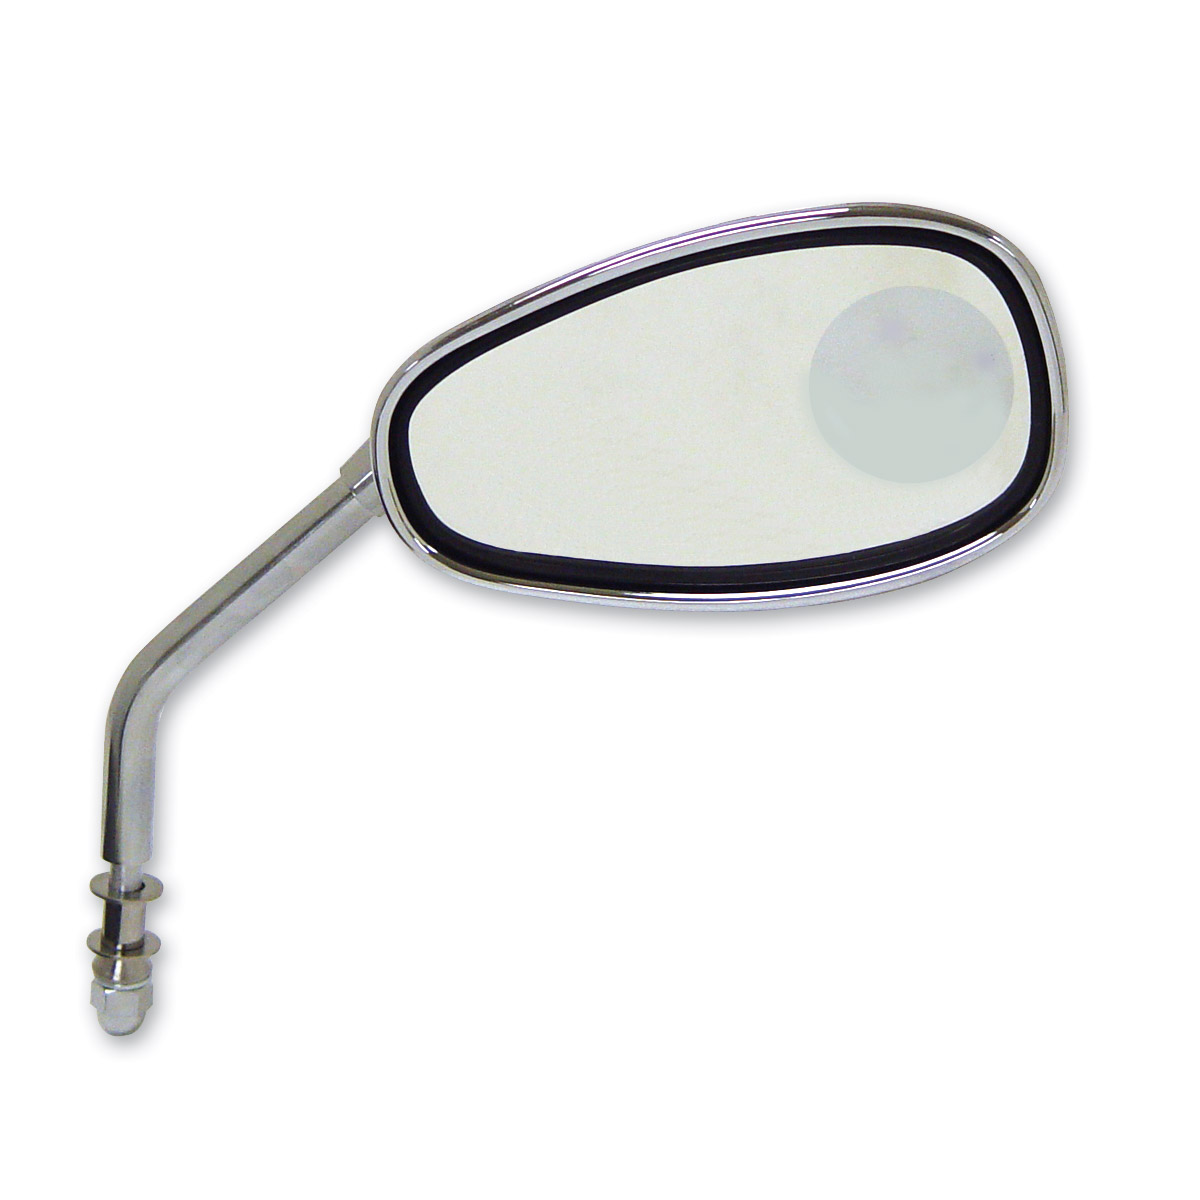 J&P Cycles® Mirrors with Inset Magnifier Lens